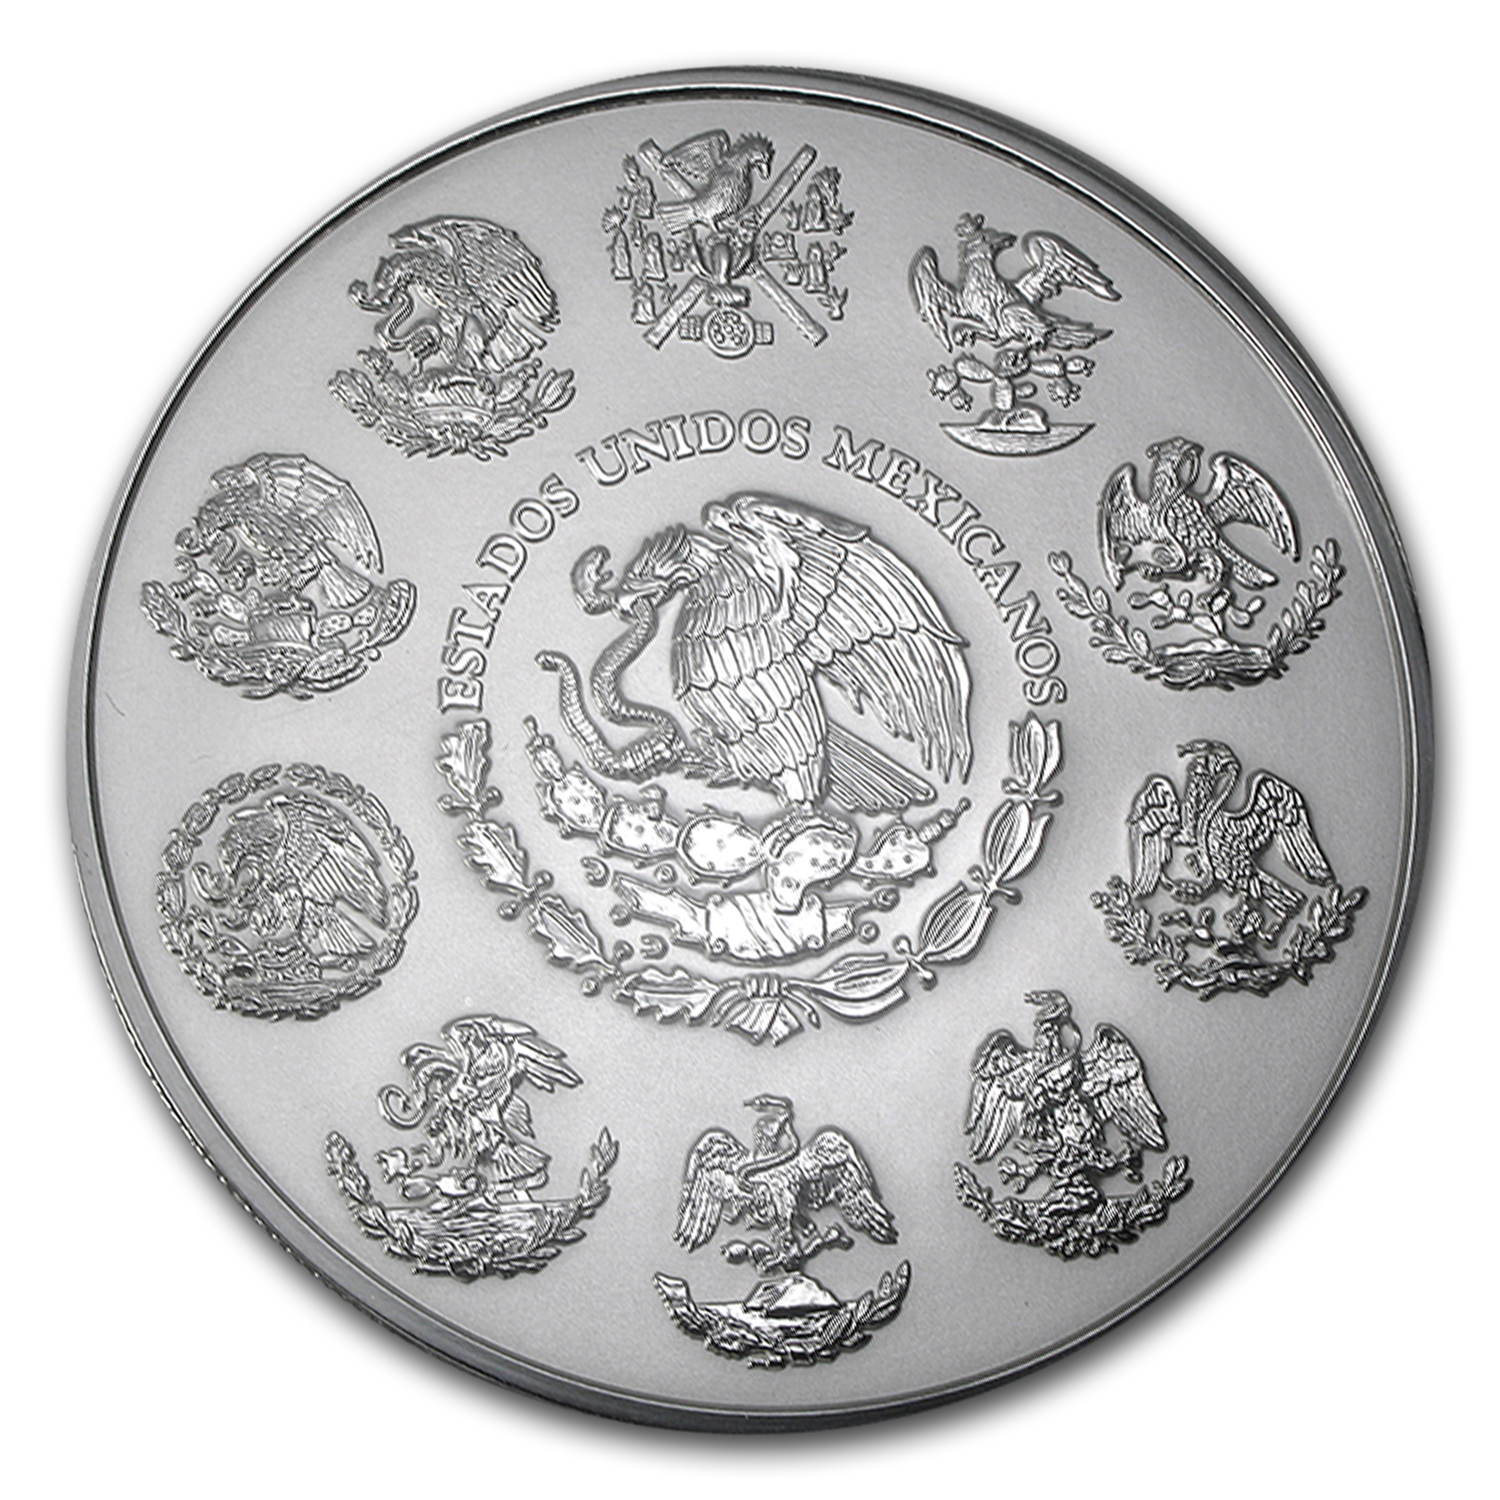 2009 Mexico 1 kilo Silver Libertad Proof Like (w/Box & COA)